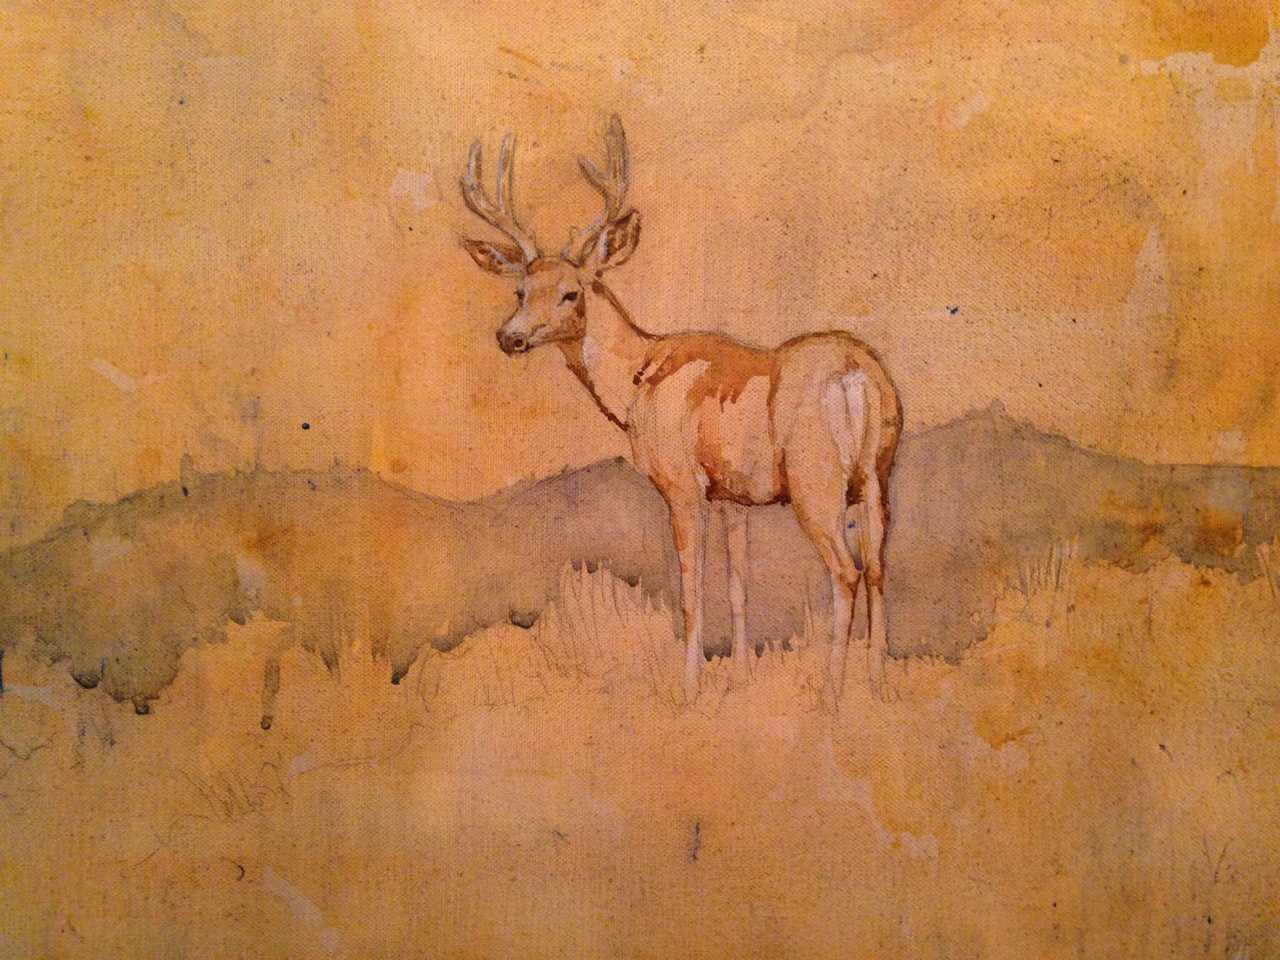 Mule deer, 16x20 acrylic and graphite on canvas.